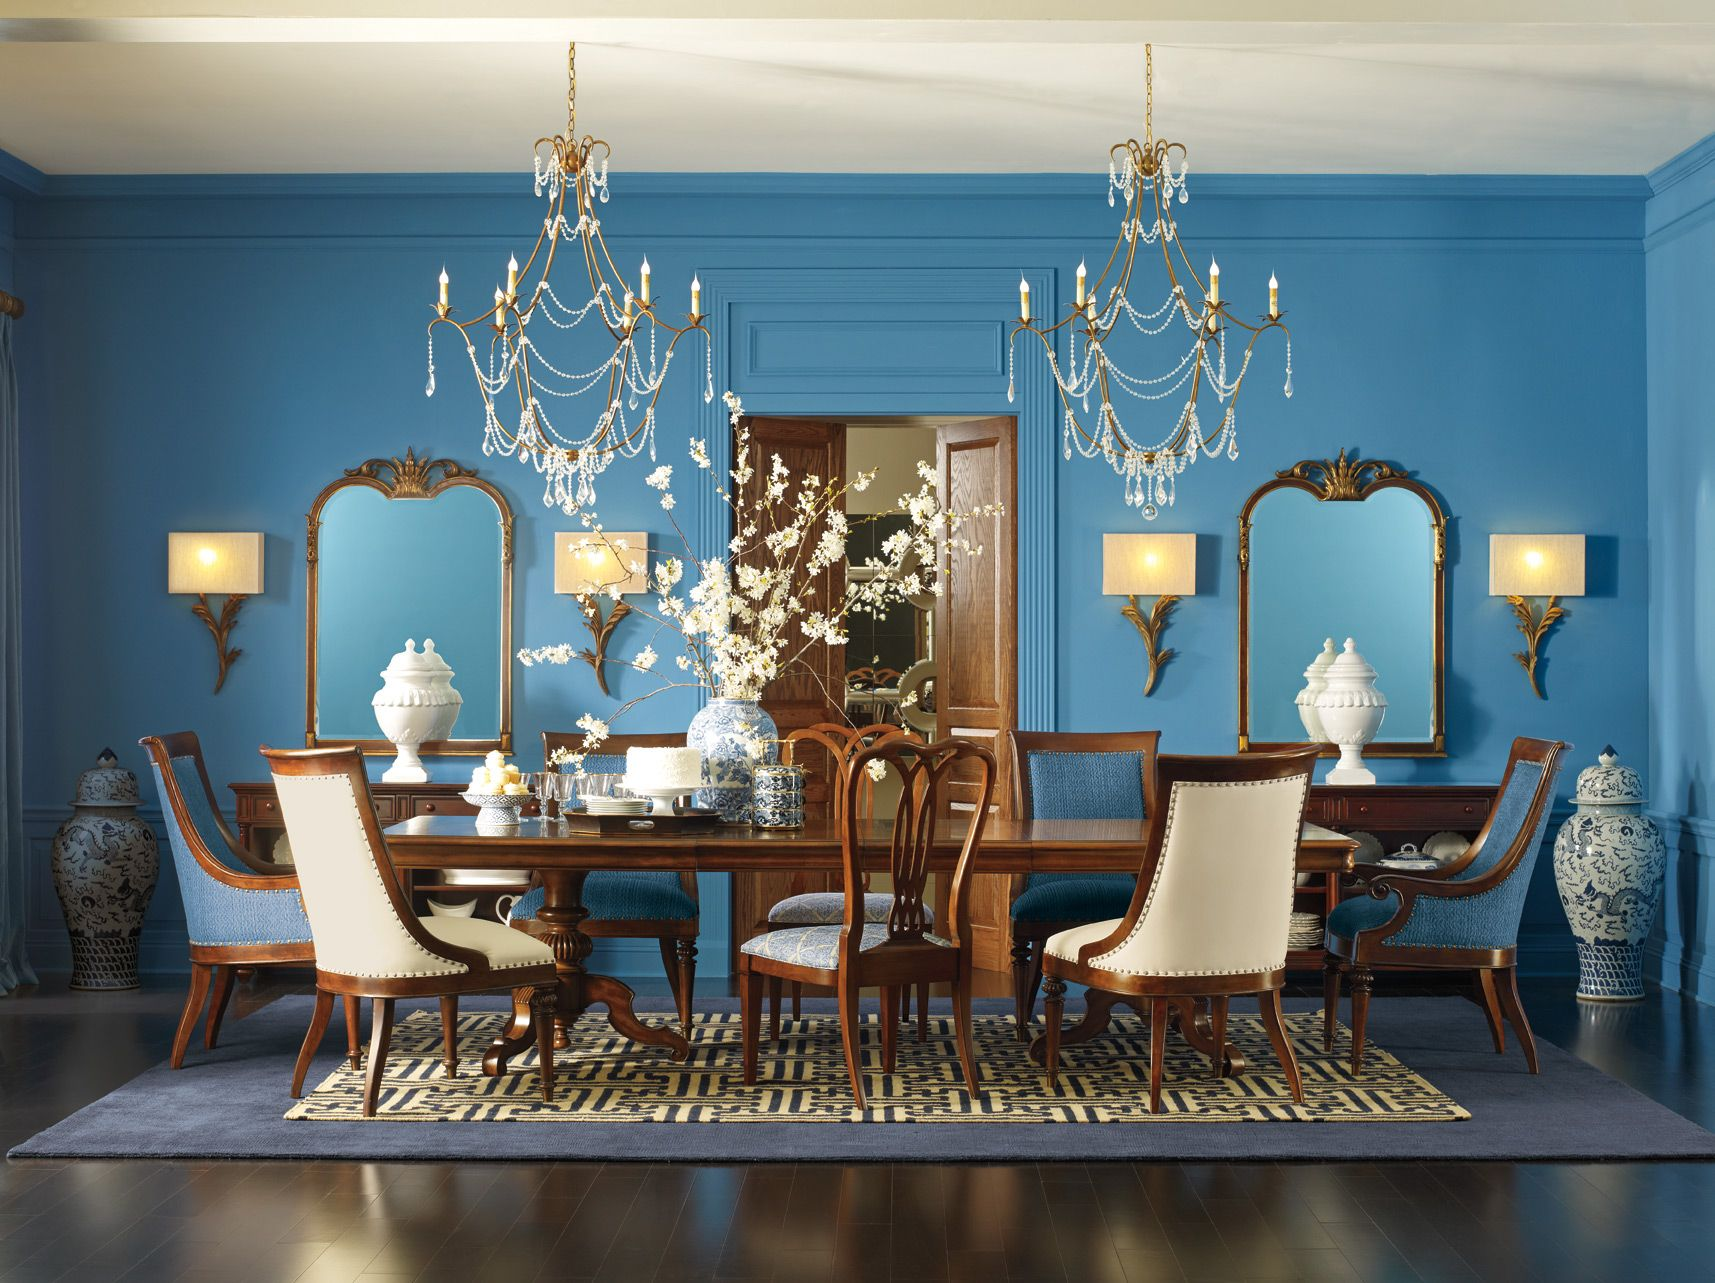 The Supper Club Featuring Fredericksburg Dining Table Ernest Hemingway Arm Side Chairs And Sloan Side Chairs Dining Thomasville Furniture Dining Room Blue